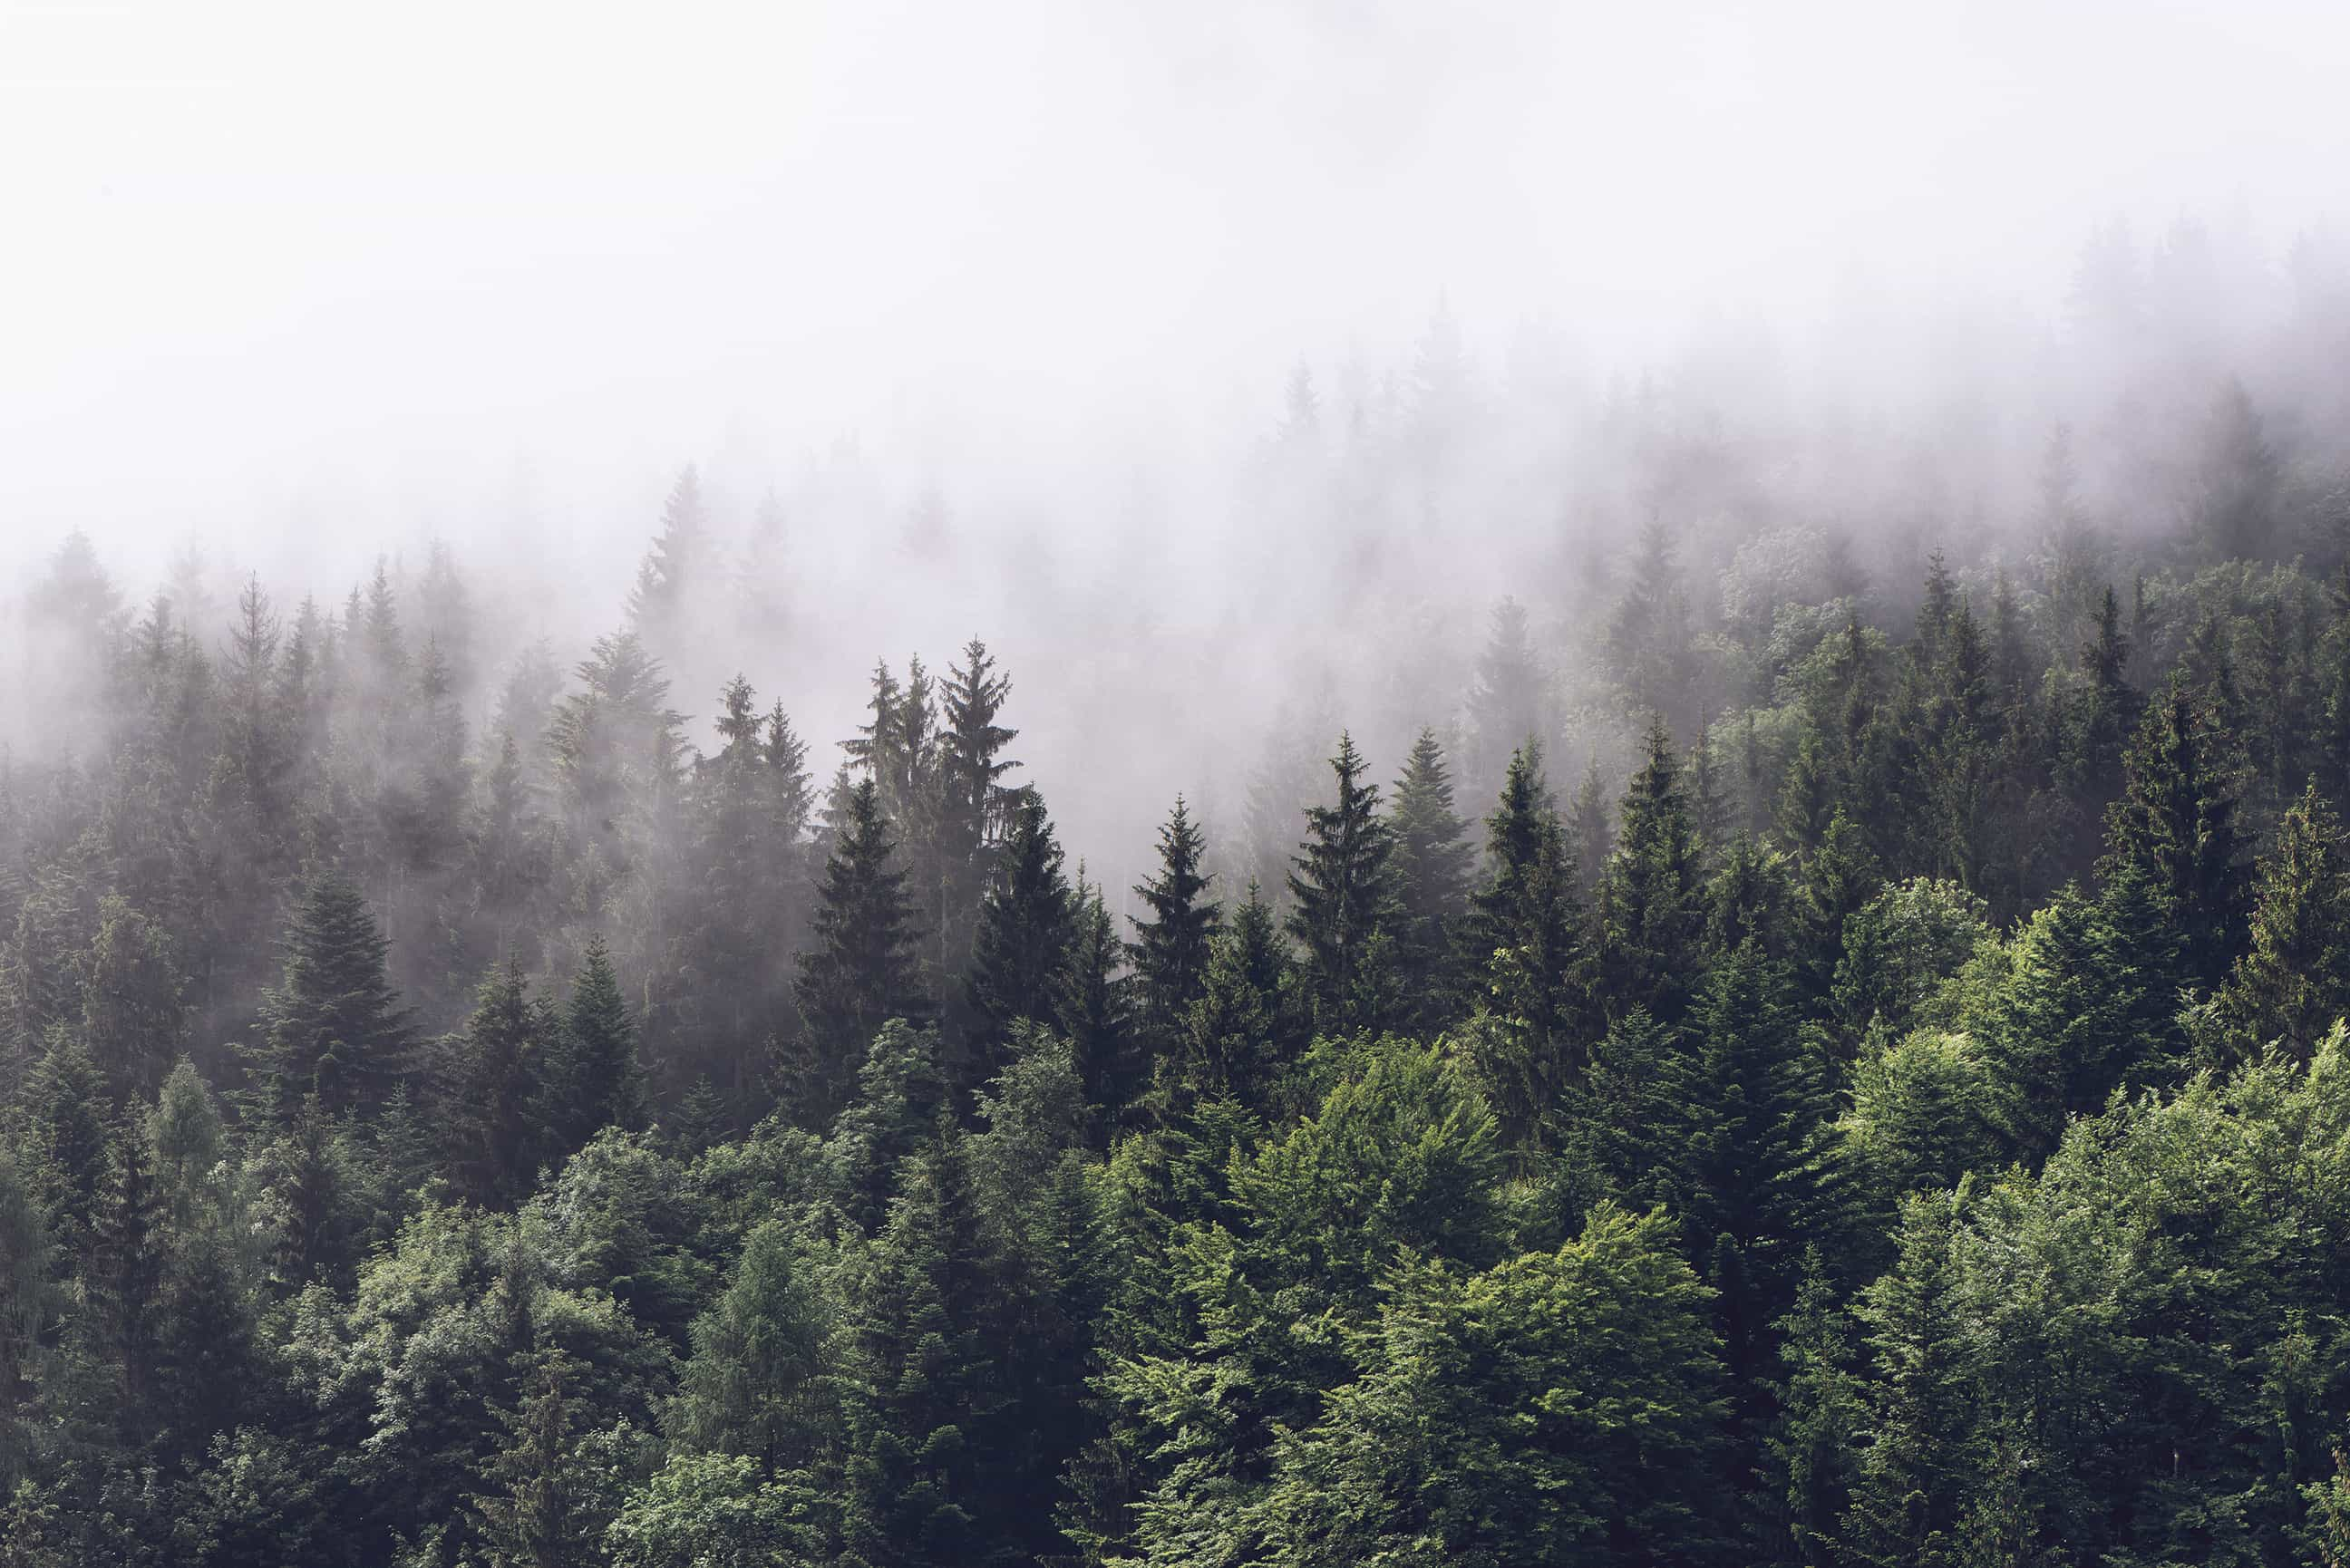 Download evergreen forest stock photos, royalty free images and vector illustrations for as low as $1. Evergreen Forest In Misty Clouds Wall Mural Misty Forest